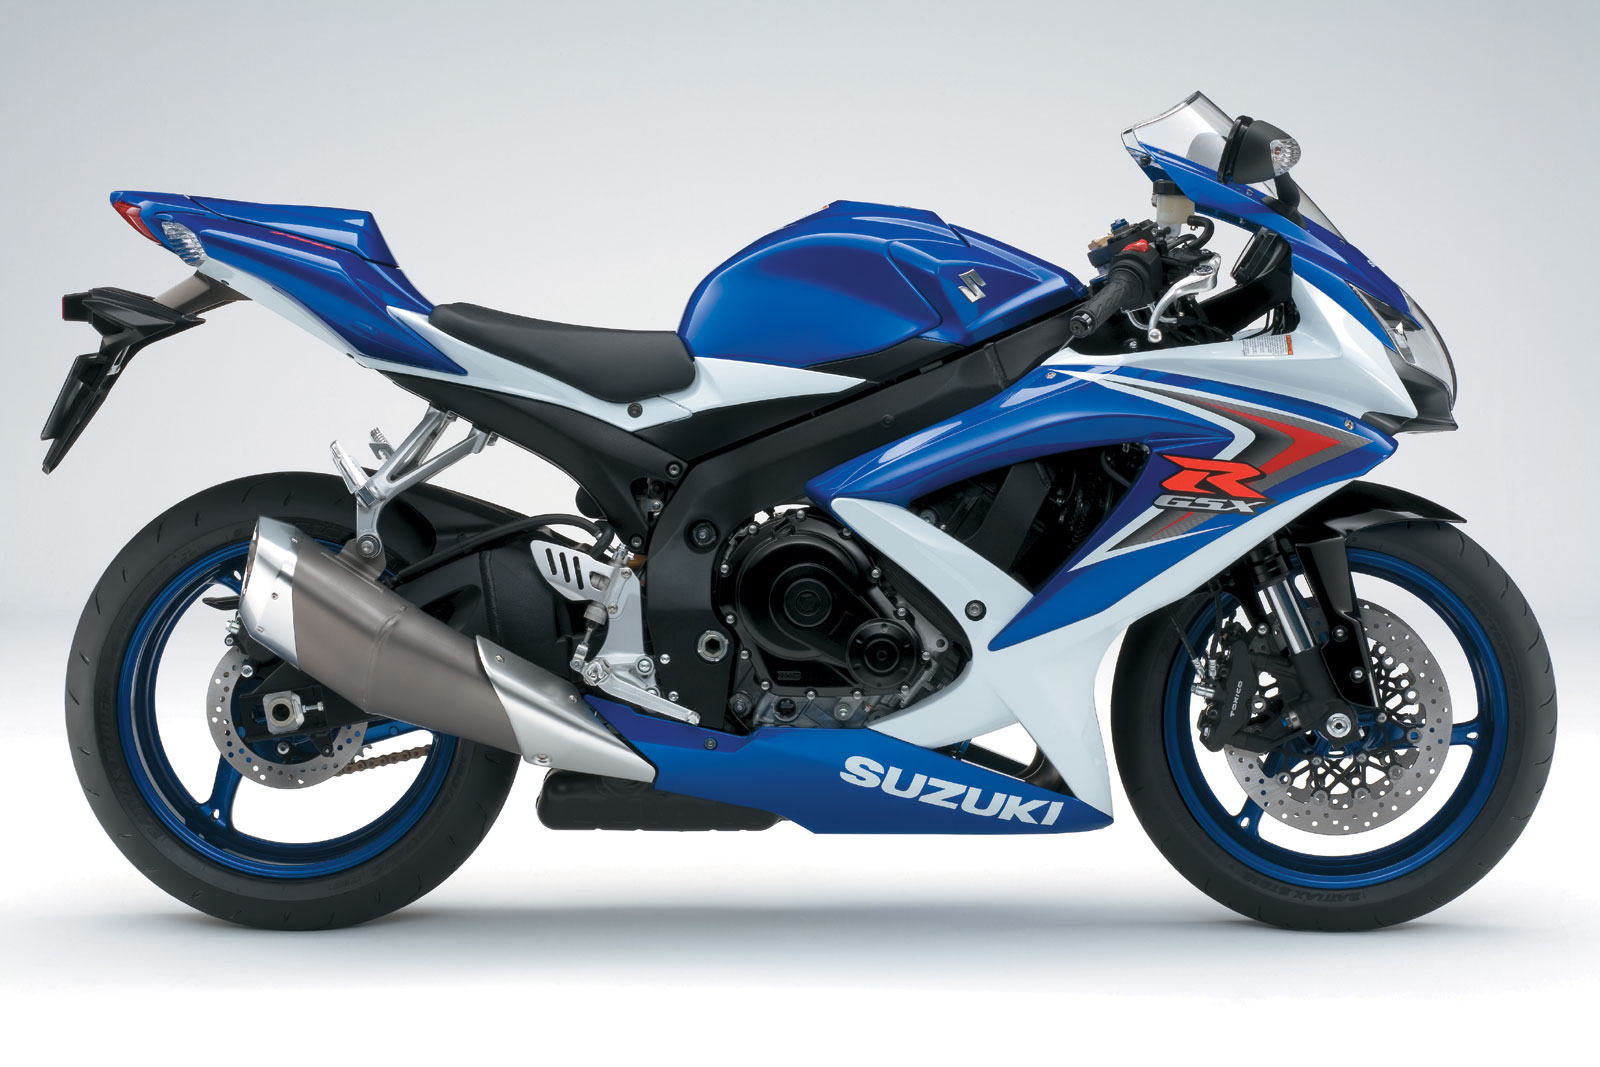 suzuki gsx r750 specs 2007 2008 autoevolution. Black Bedroom Furniture Sets. Home Design Ideas